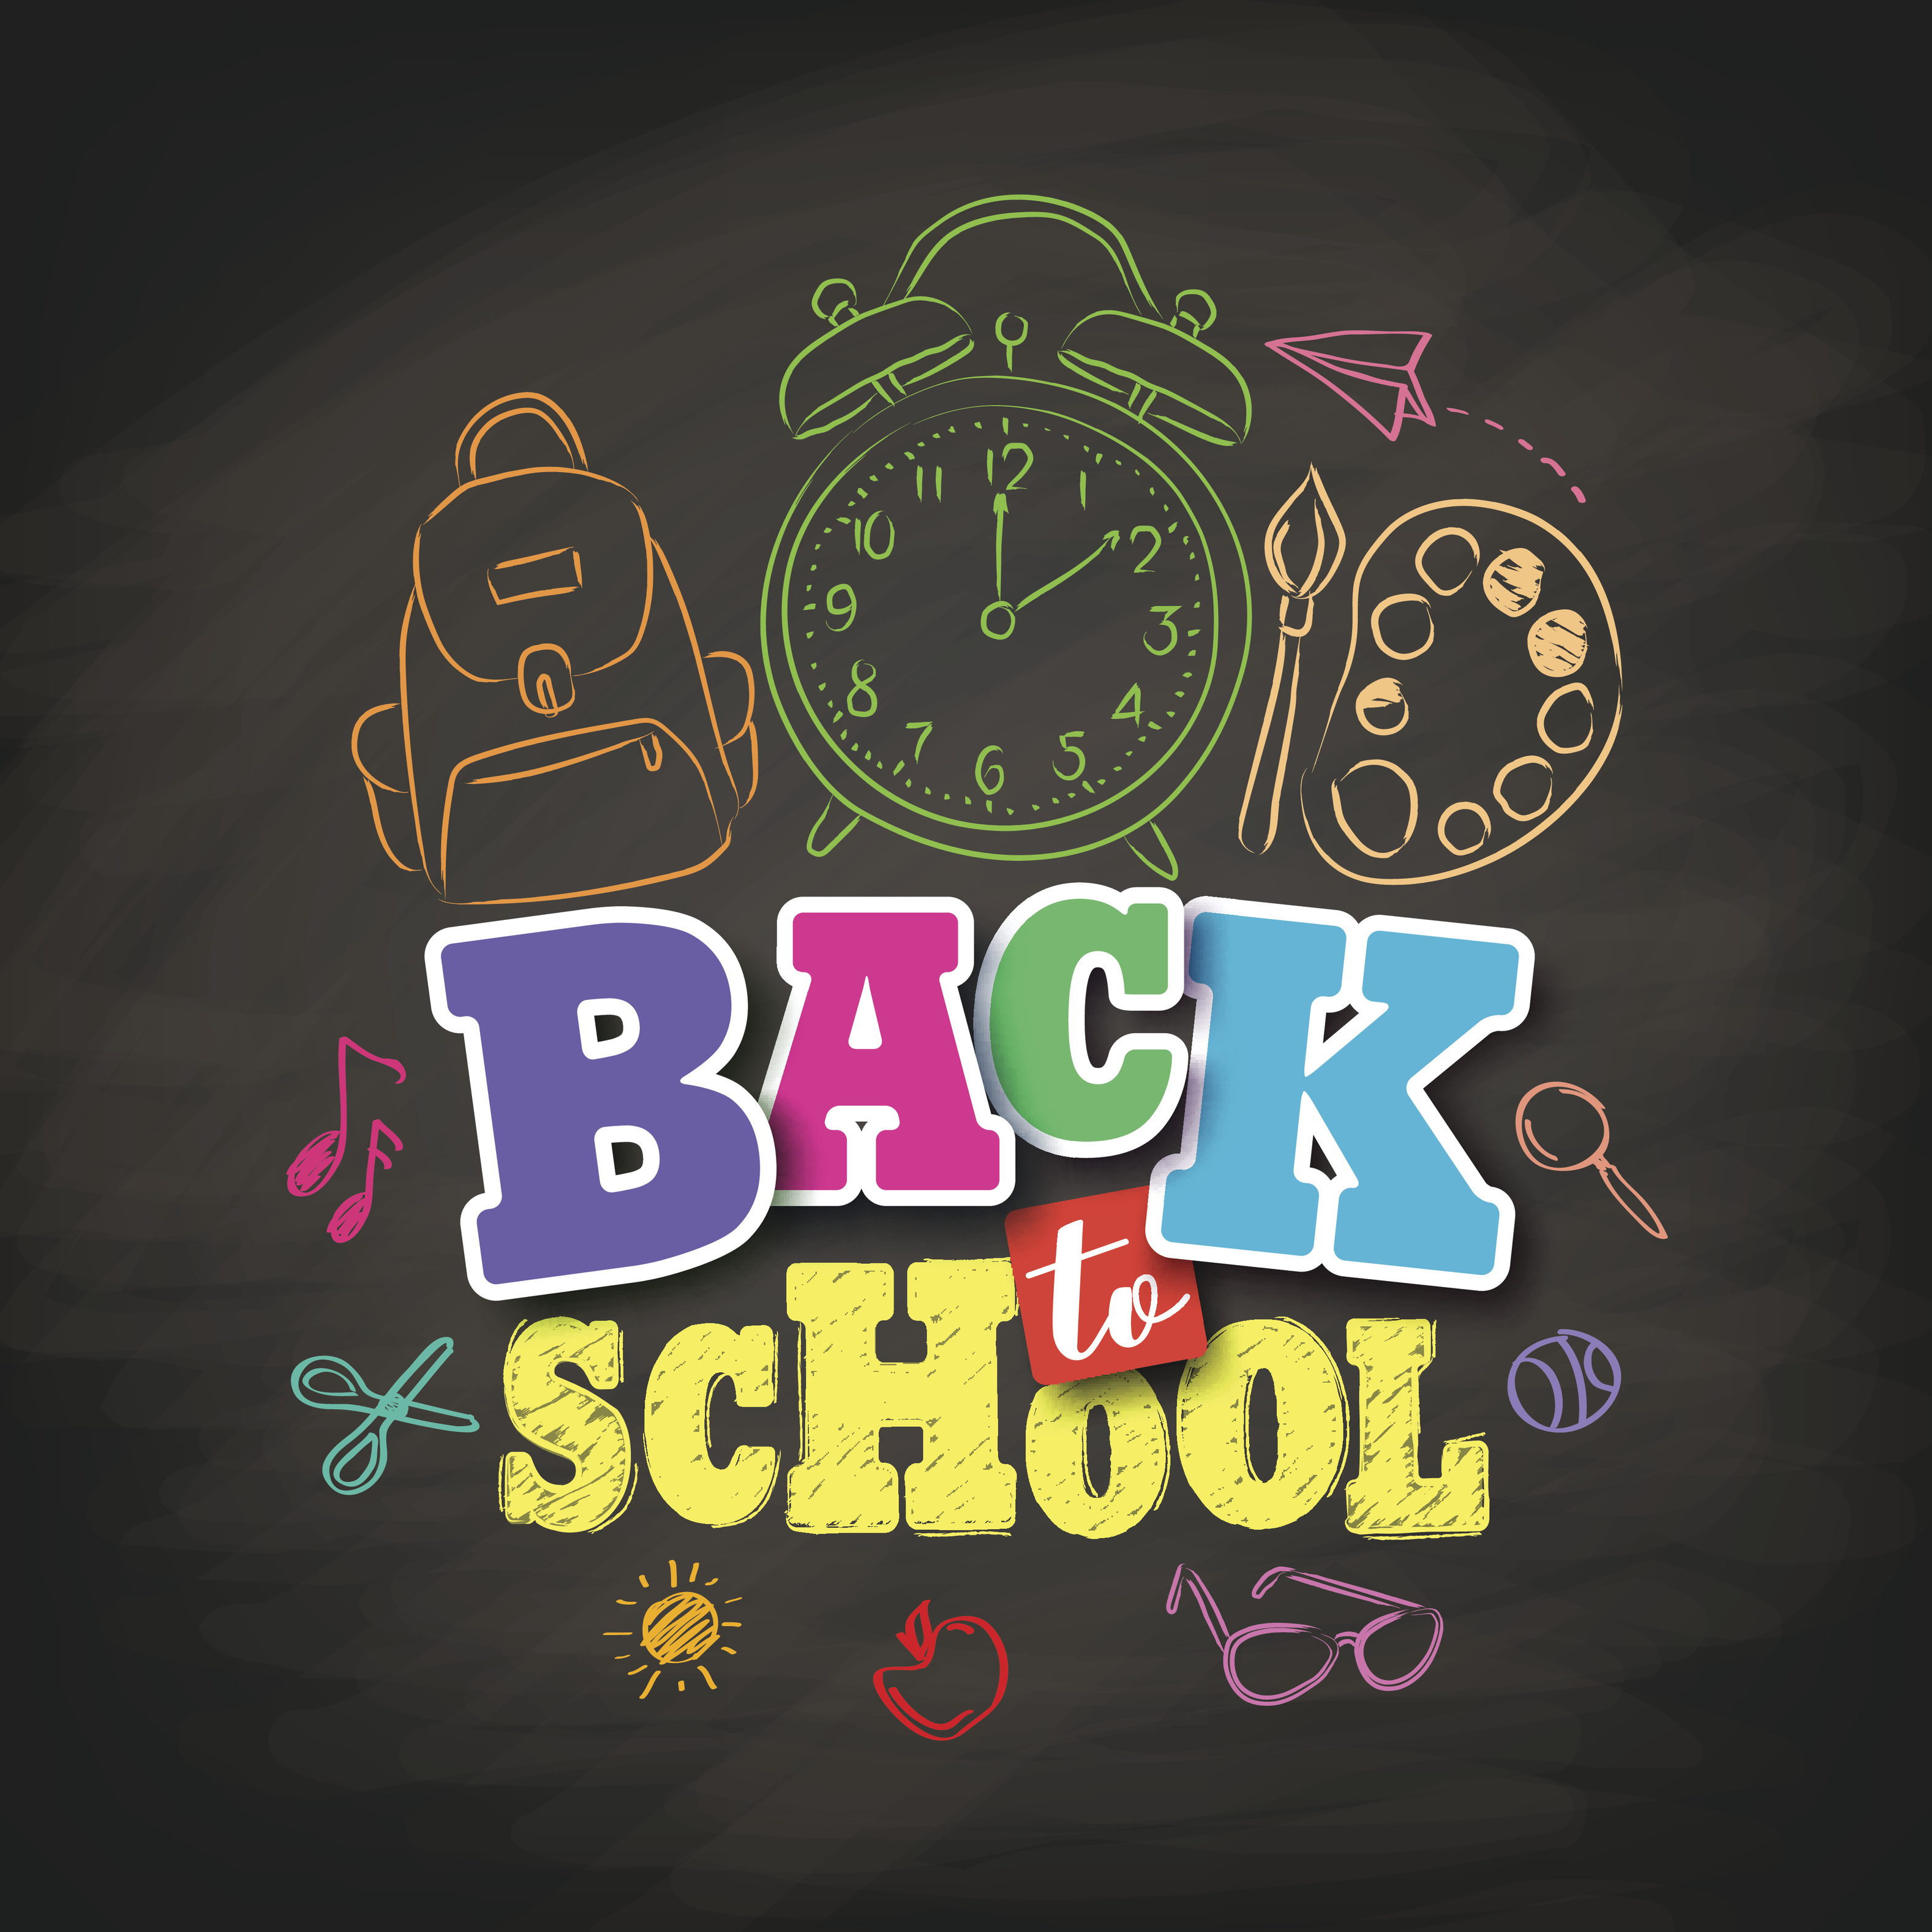 The Bureau of Special Education's 15th Annual Back to School Meeting